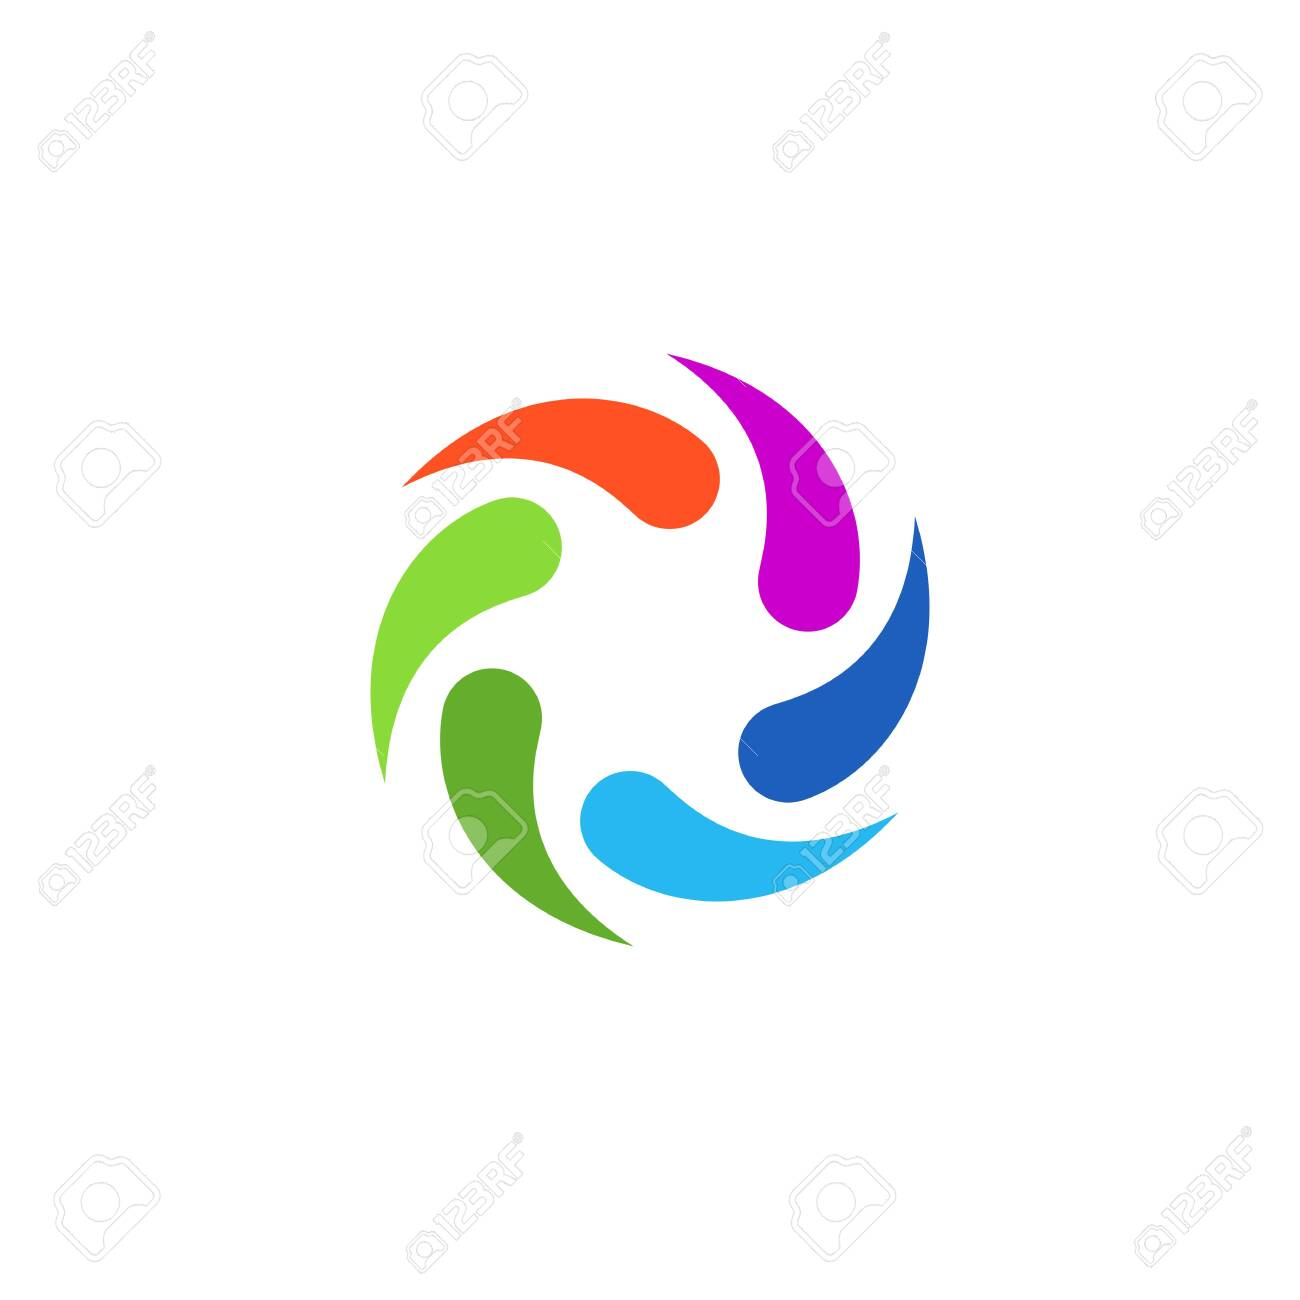 Colorful Abstract Circular Swirl Logo Round Shape For Promotion